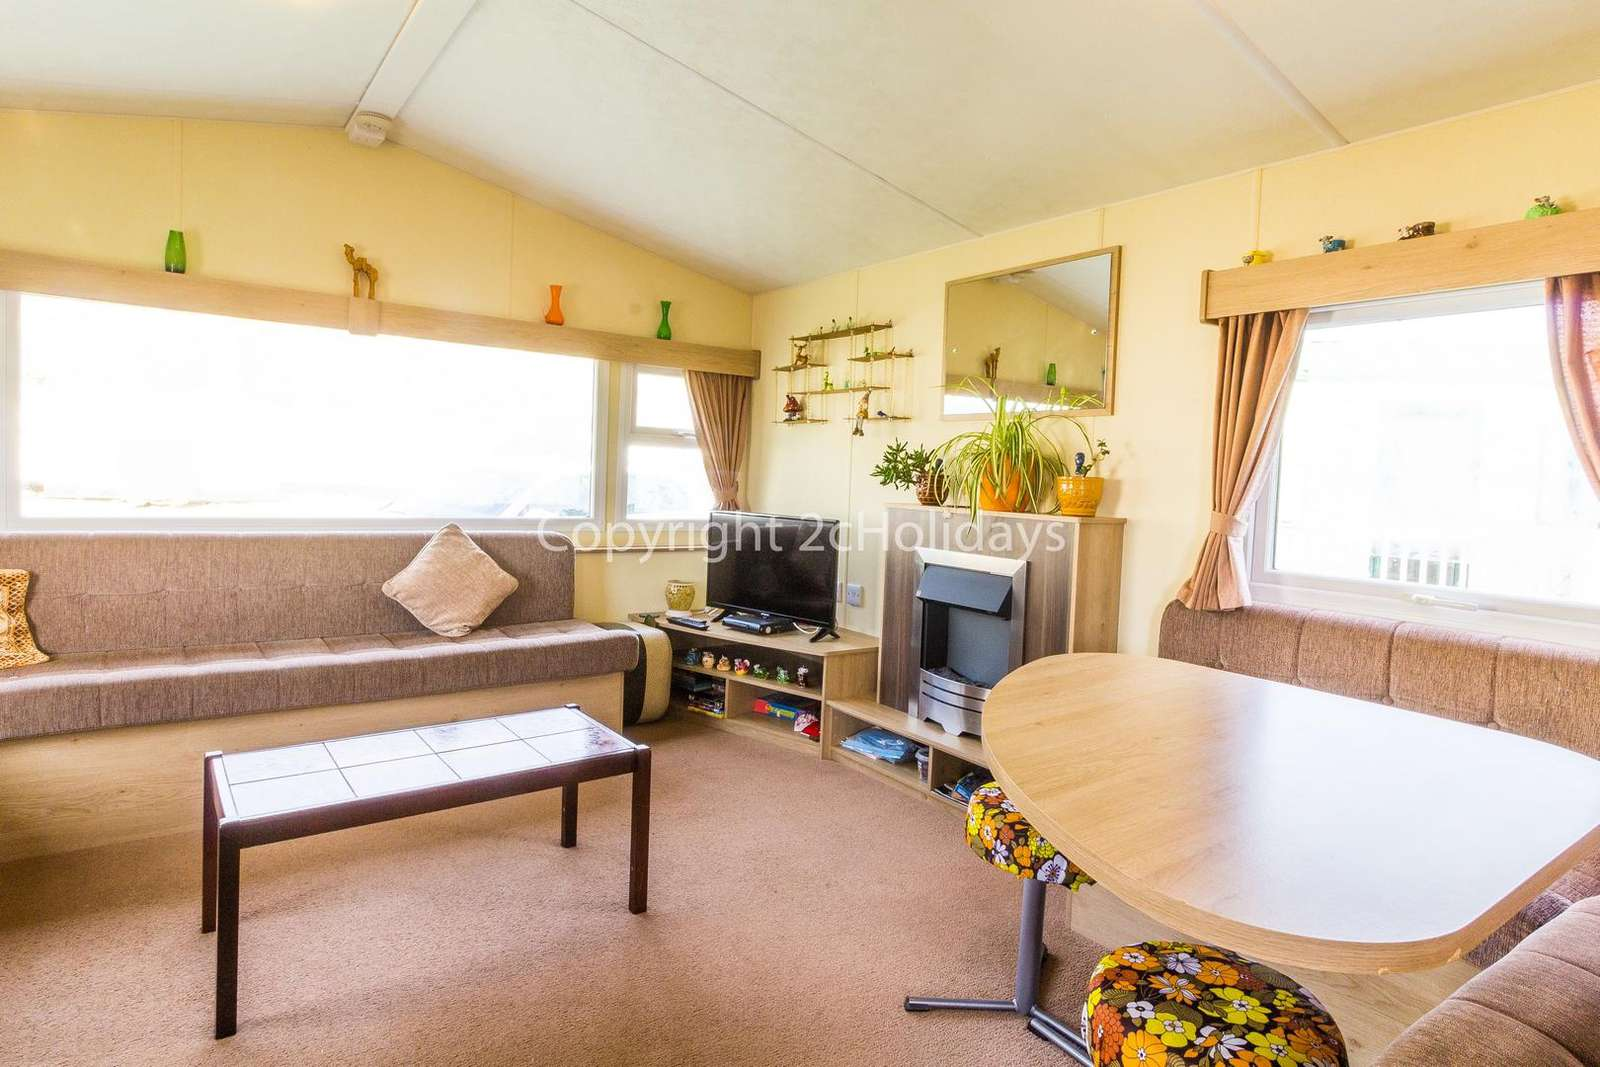 Includes a great size double sofa bed in the lounge